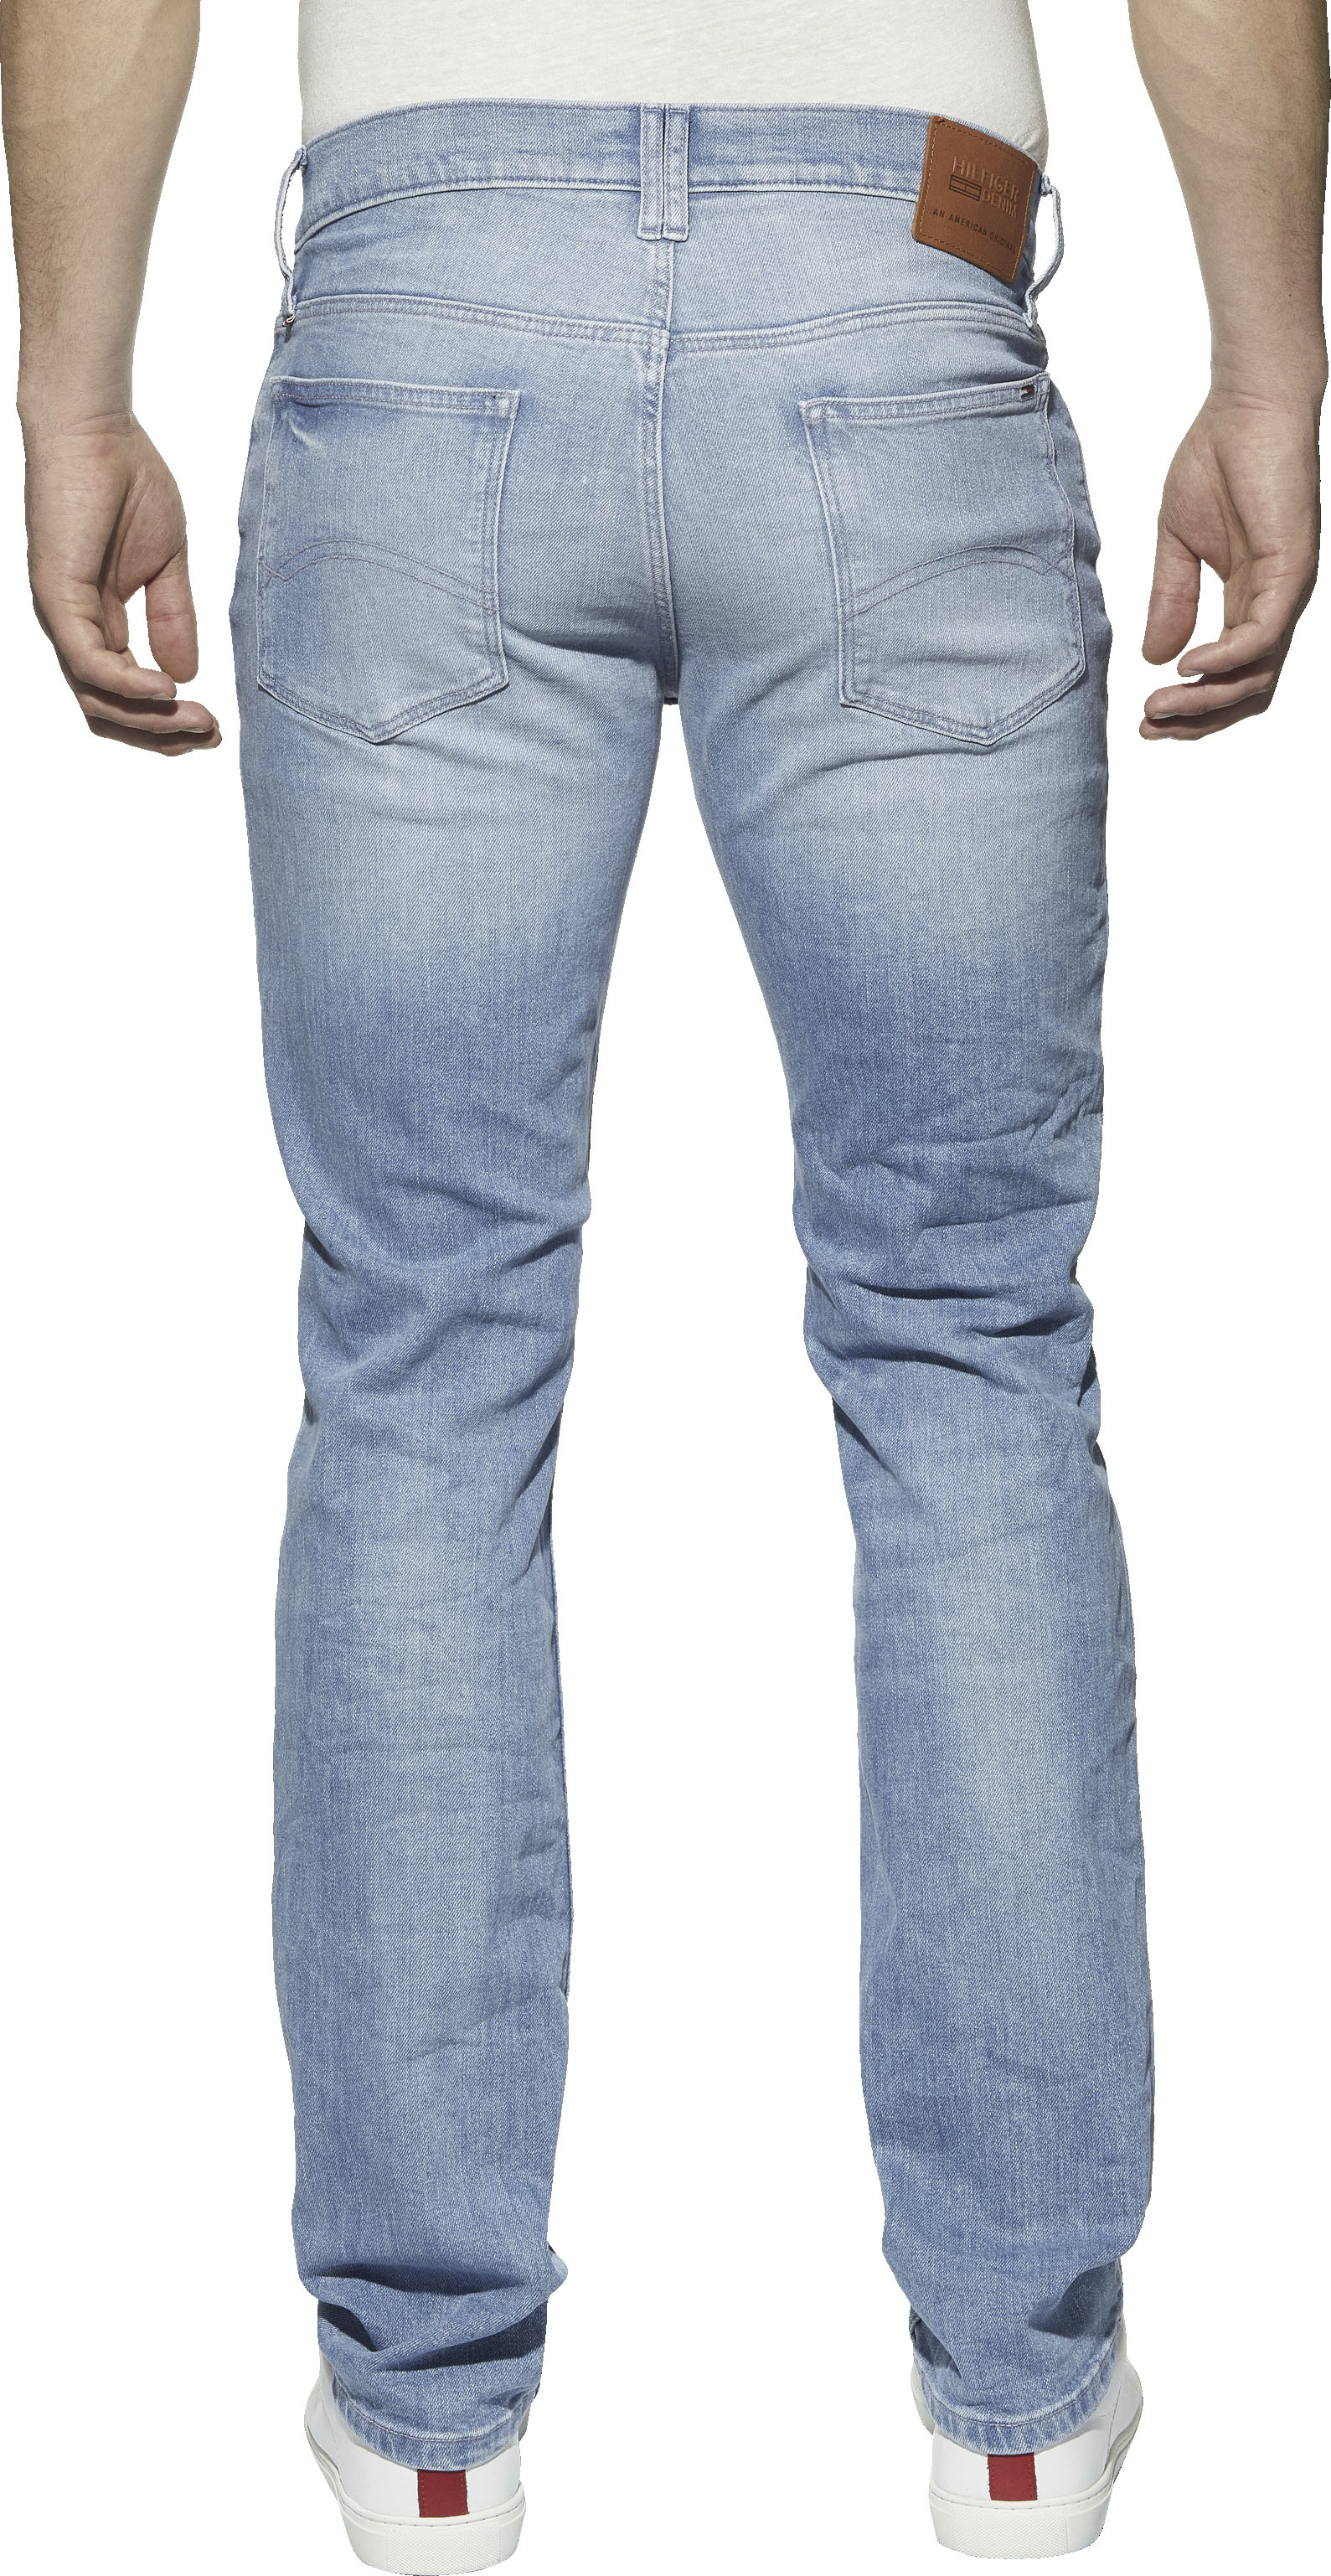 TOMMY JEANS Straight-Jeans ORIGINAL STRAIGHT RYAN | Bekleidung > Jeans > Straight Leg Jeans | Tommy Jeans